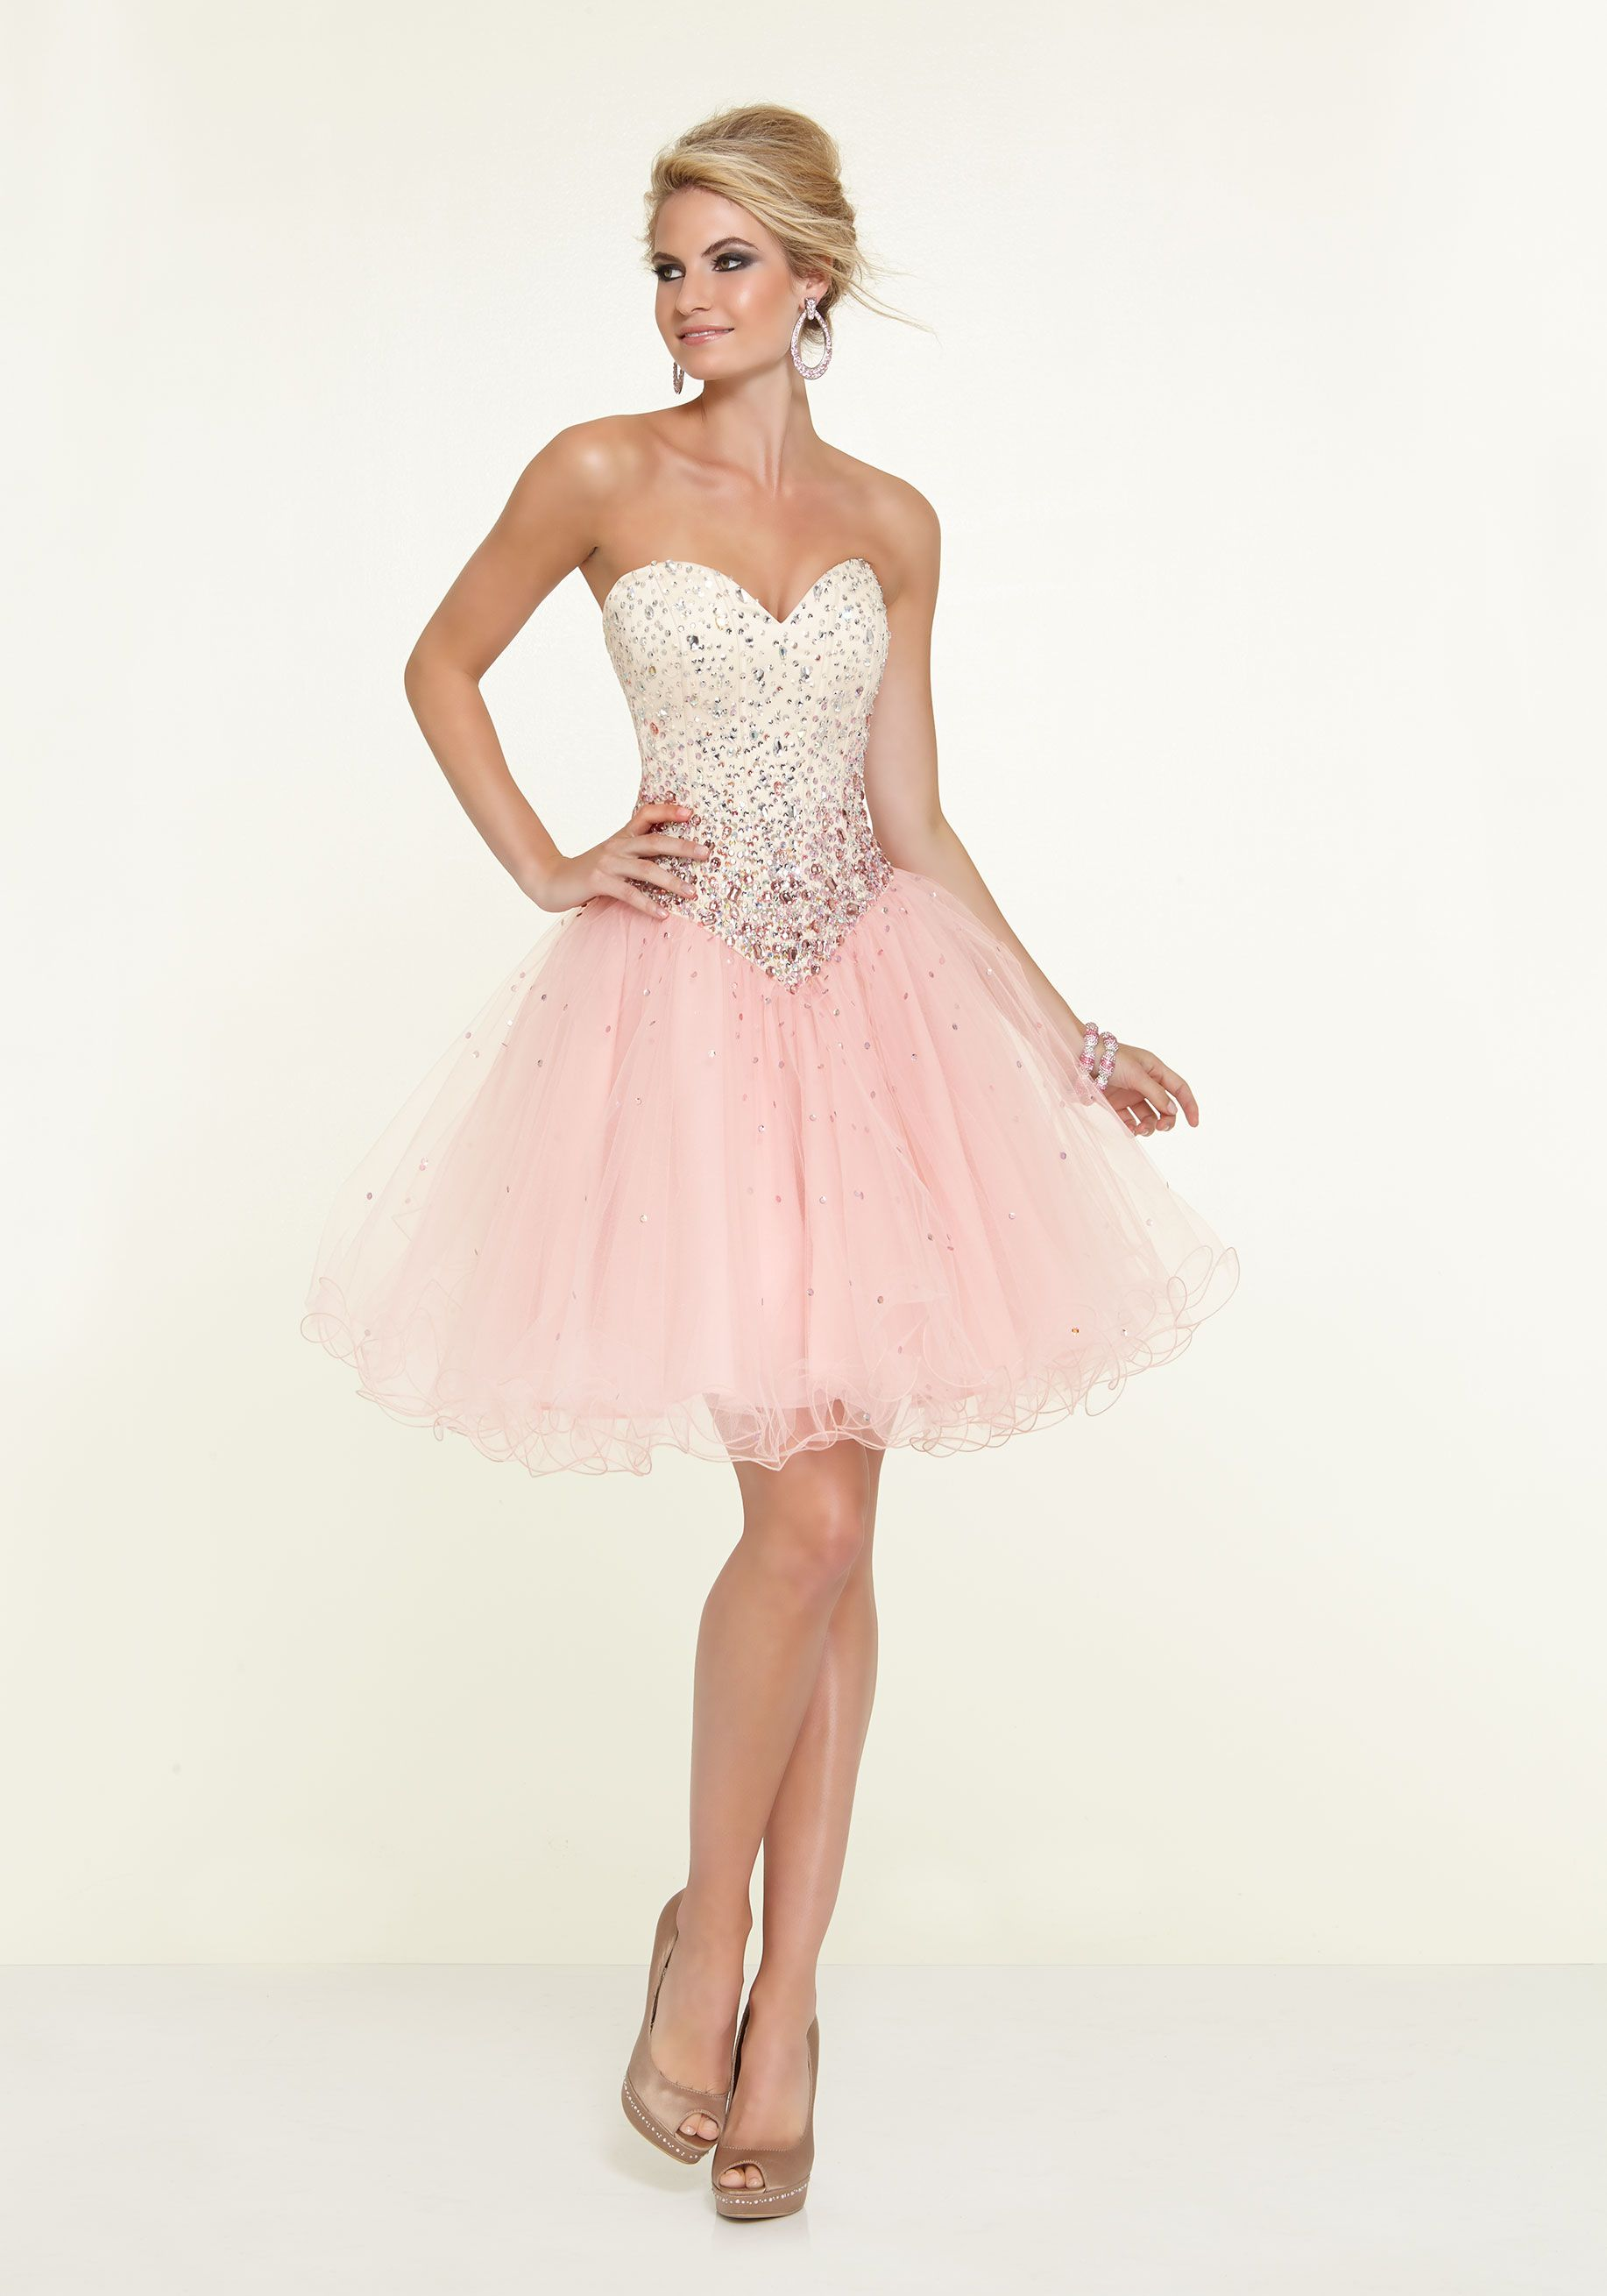 Satin and Tulle with Ombre Beading Party Dress Designed by Madeline ...